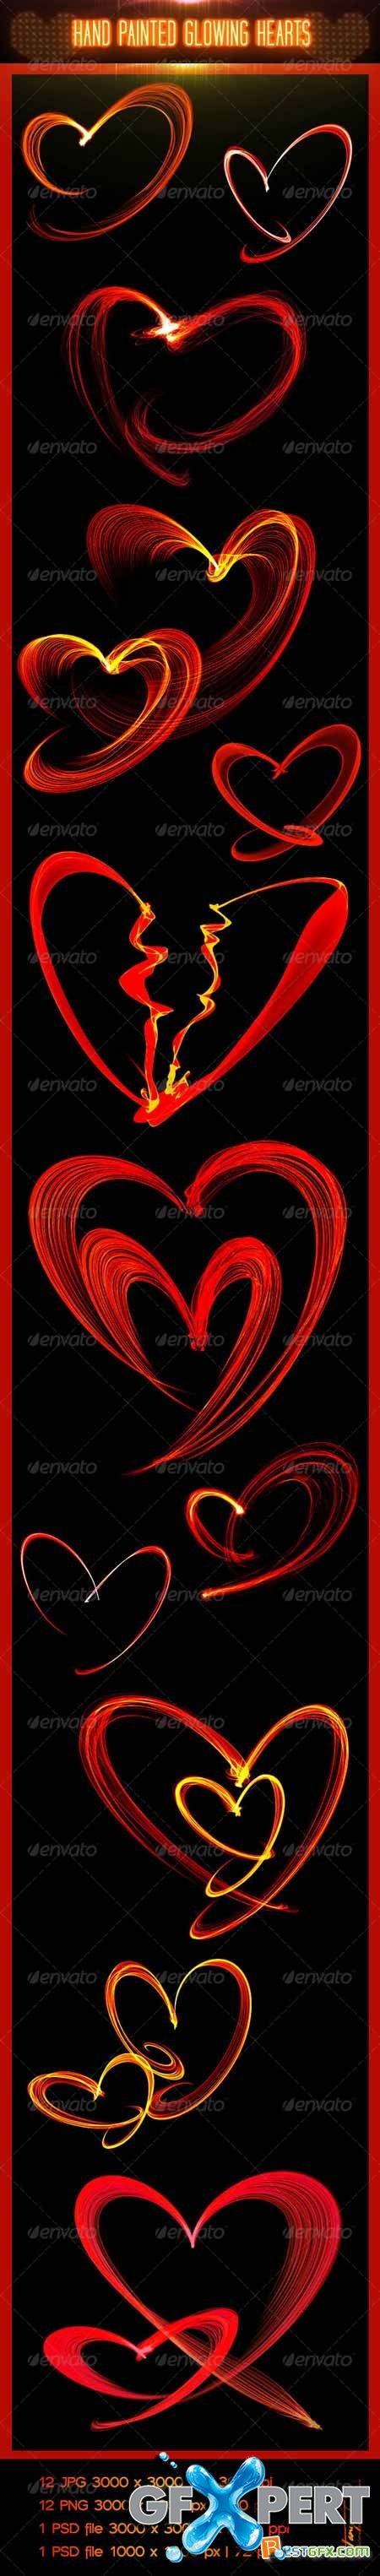 Graphicriver Hand Painted Glowing Hearts 6610541